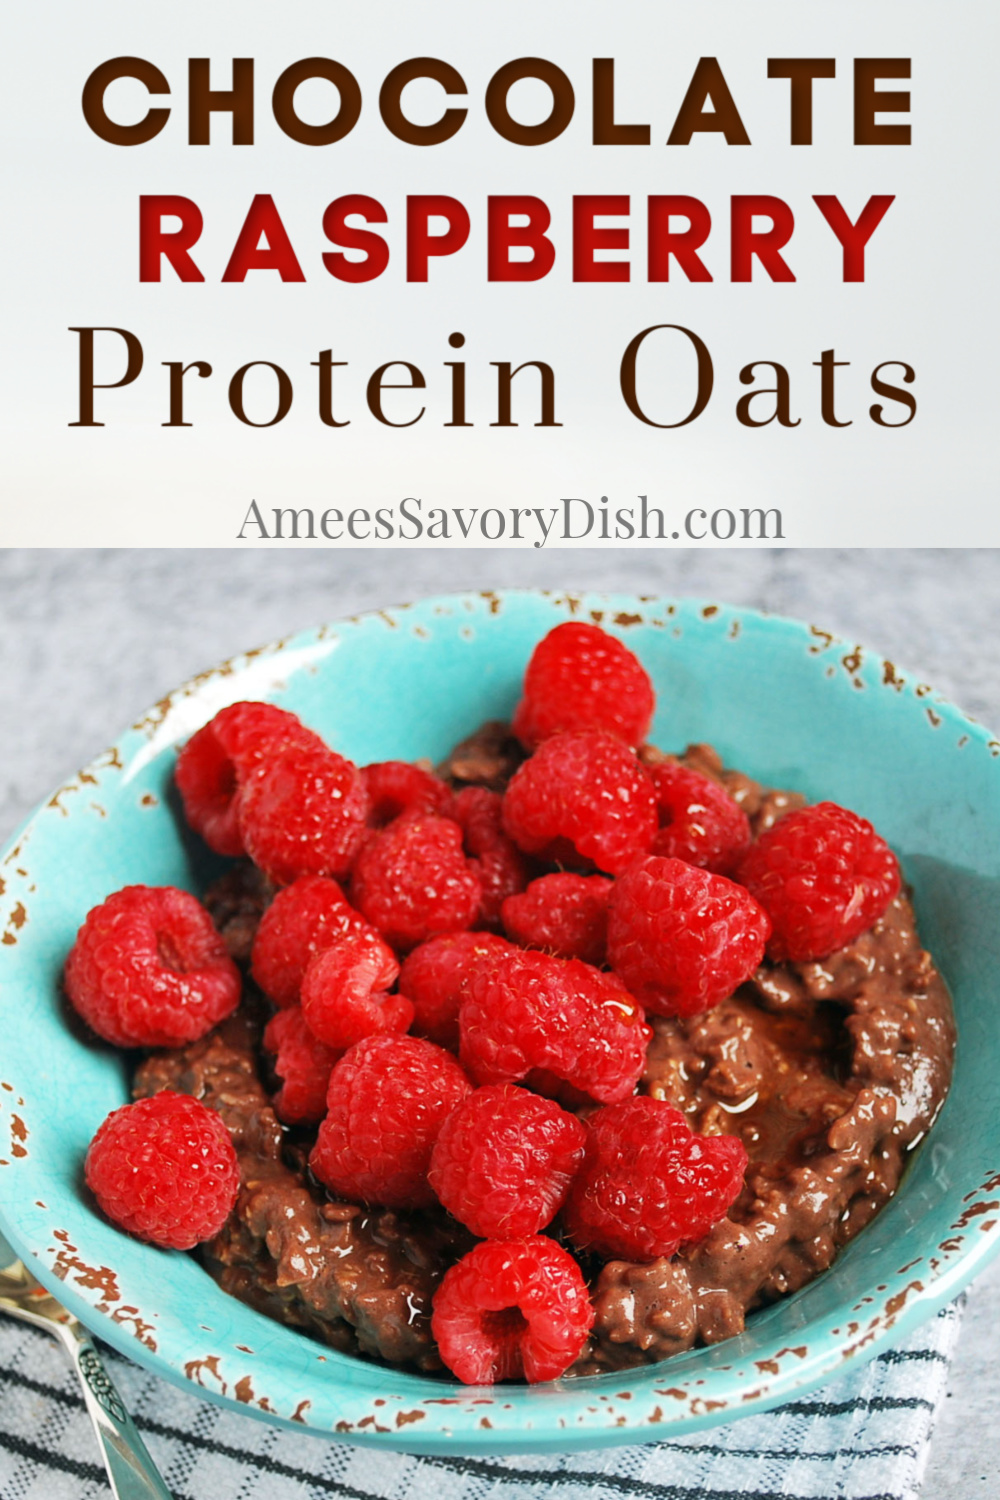 A simple recipe for chocolate raspberry protein oats made with quick oats, protein powder, almond milk, ground flaxseed, and fresh berries.  These oats and whey make the perfect breakfast on-the-go ready in under 5 minutes.  #oatsandwhey #proteinporridge #proteinoats #proteinoatmeal #breakfast #oatmeal via @Ameessavorydish